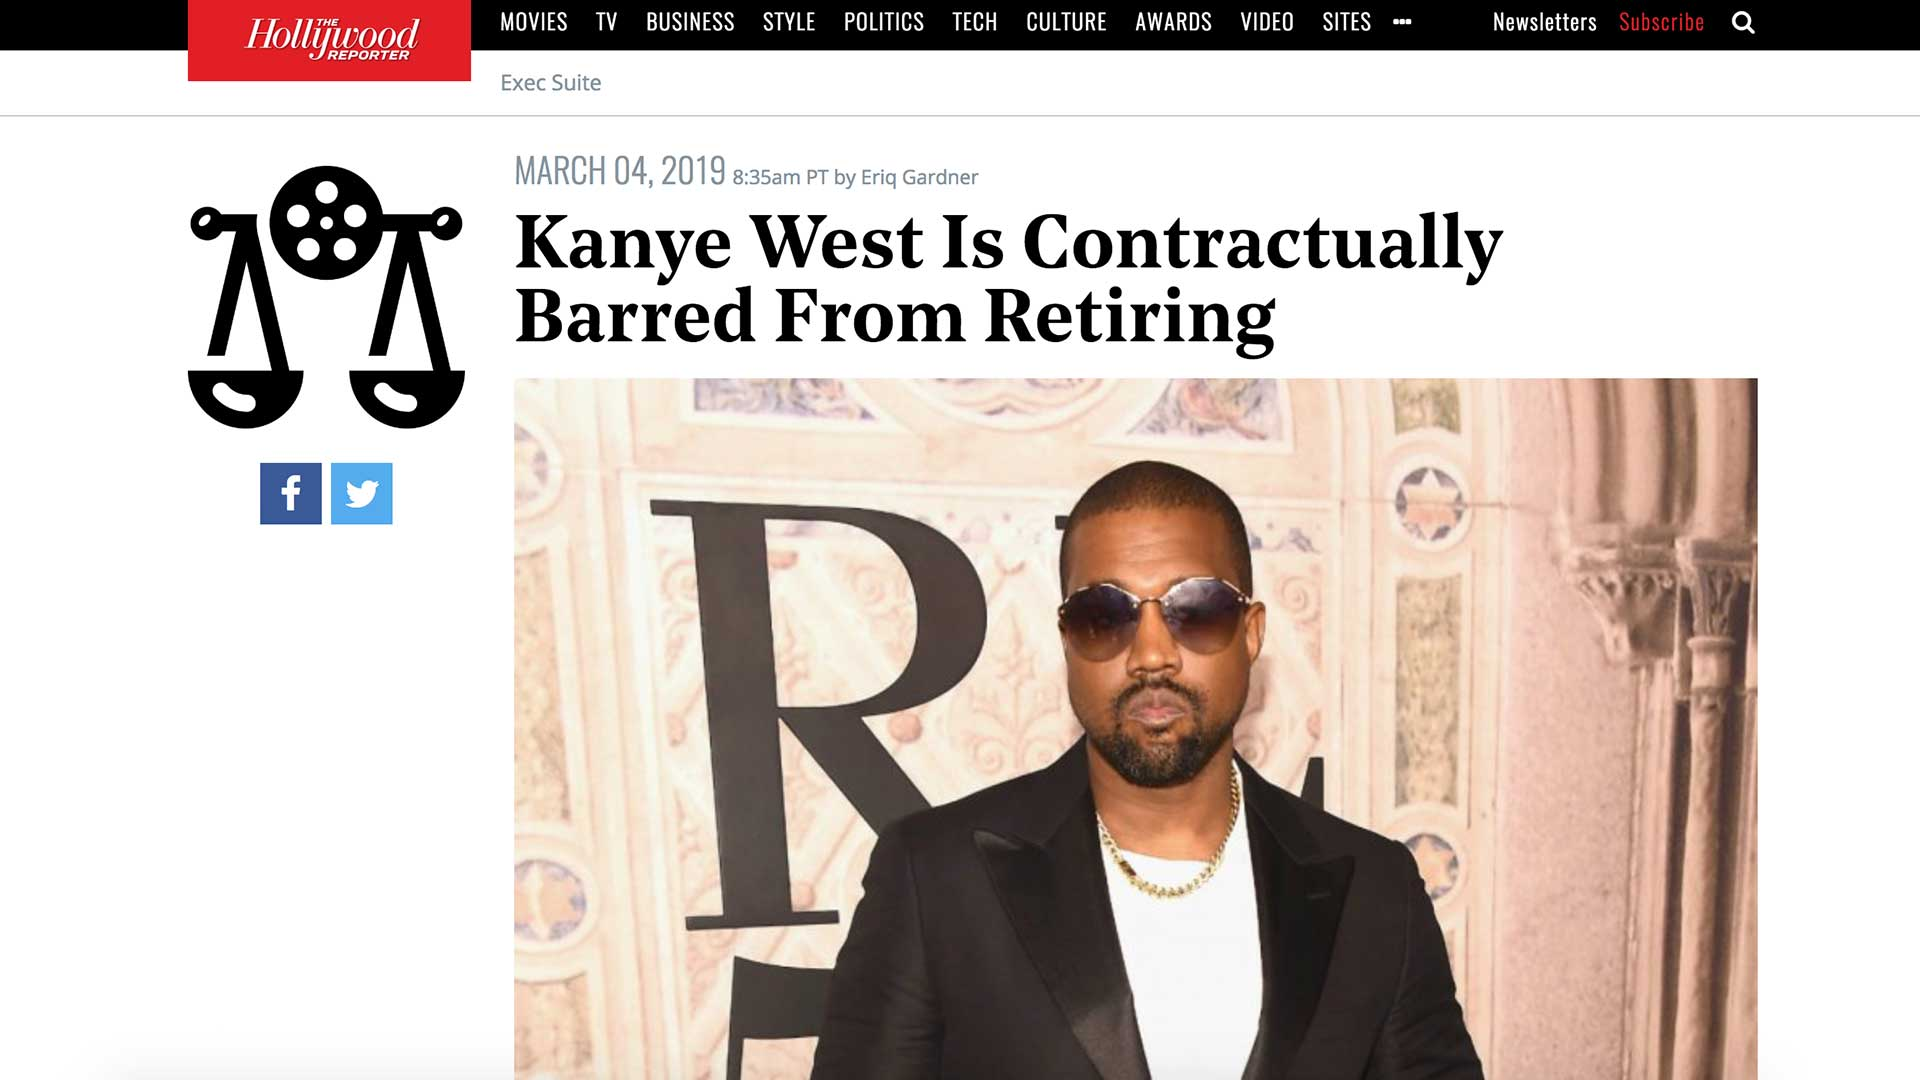 Fairness Rocks News Kanye West Is Contractually Barred From Retiring